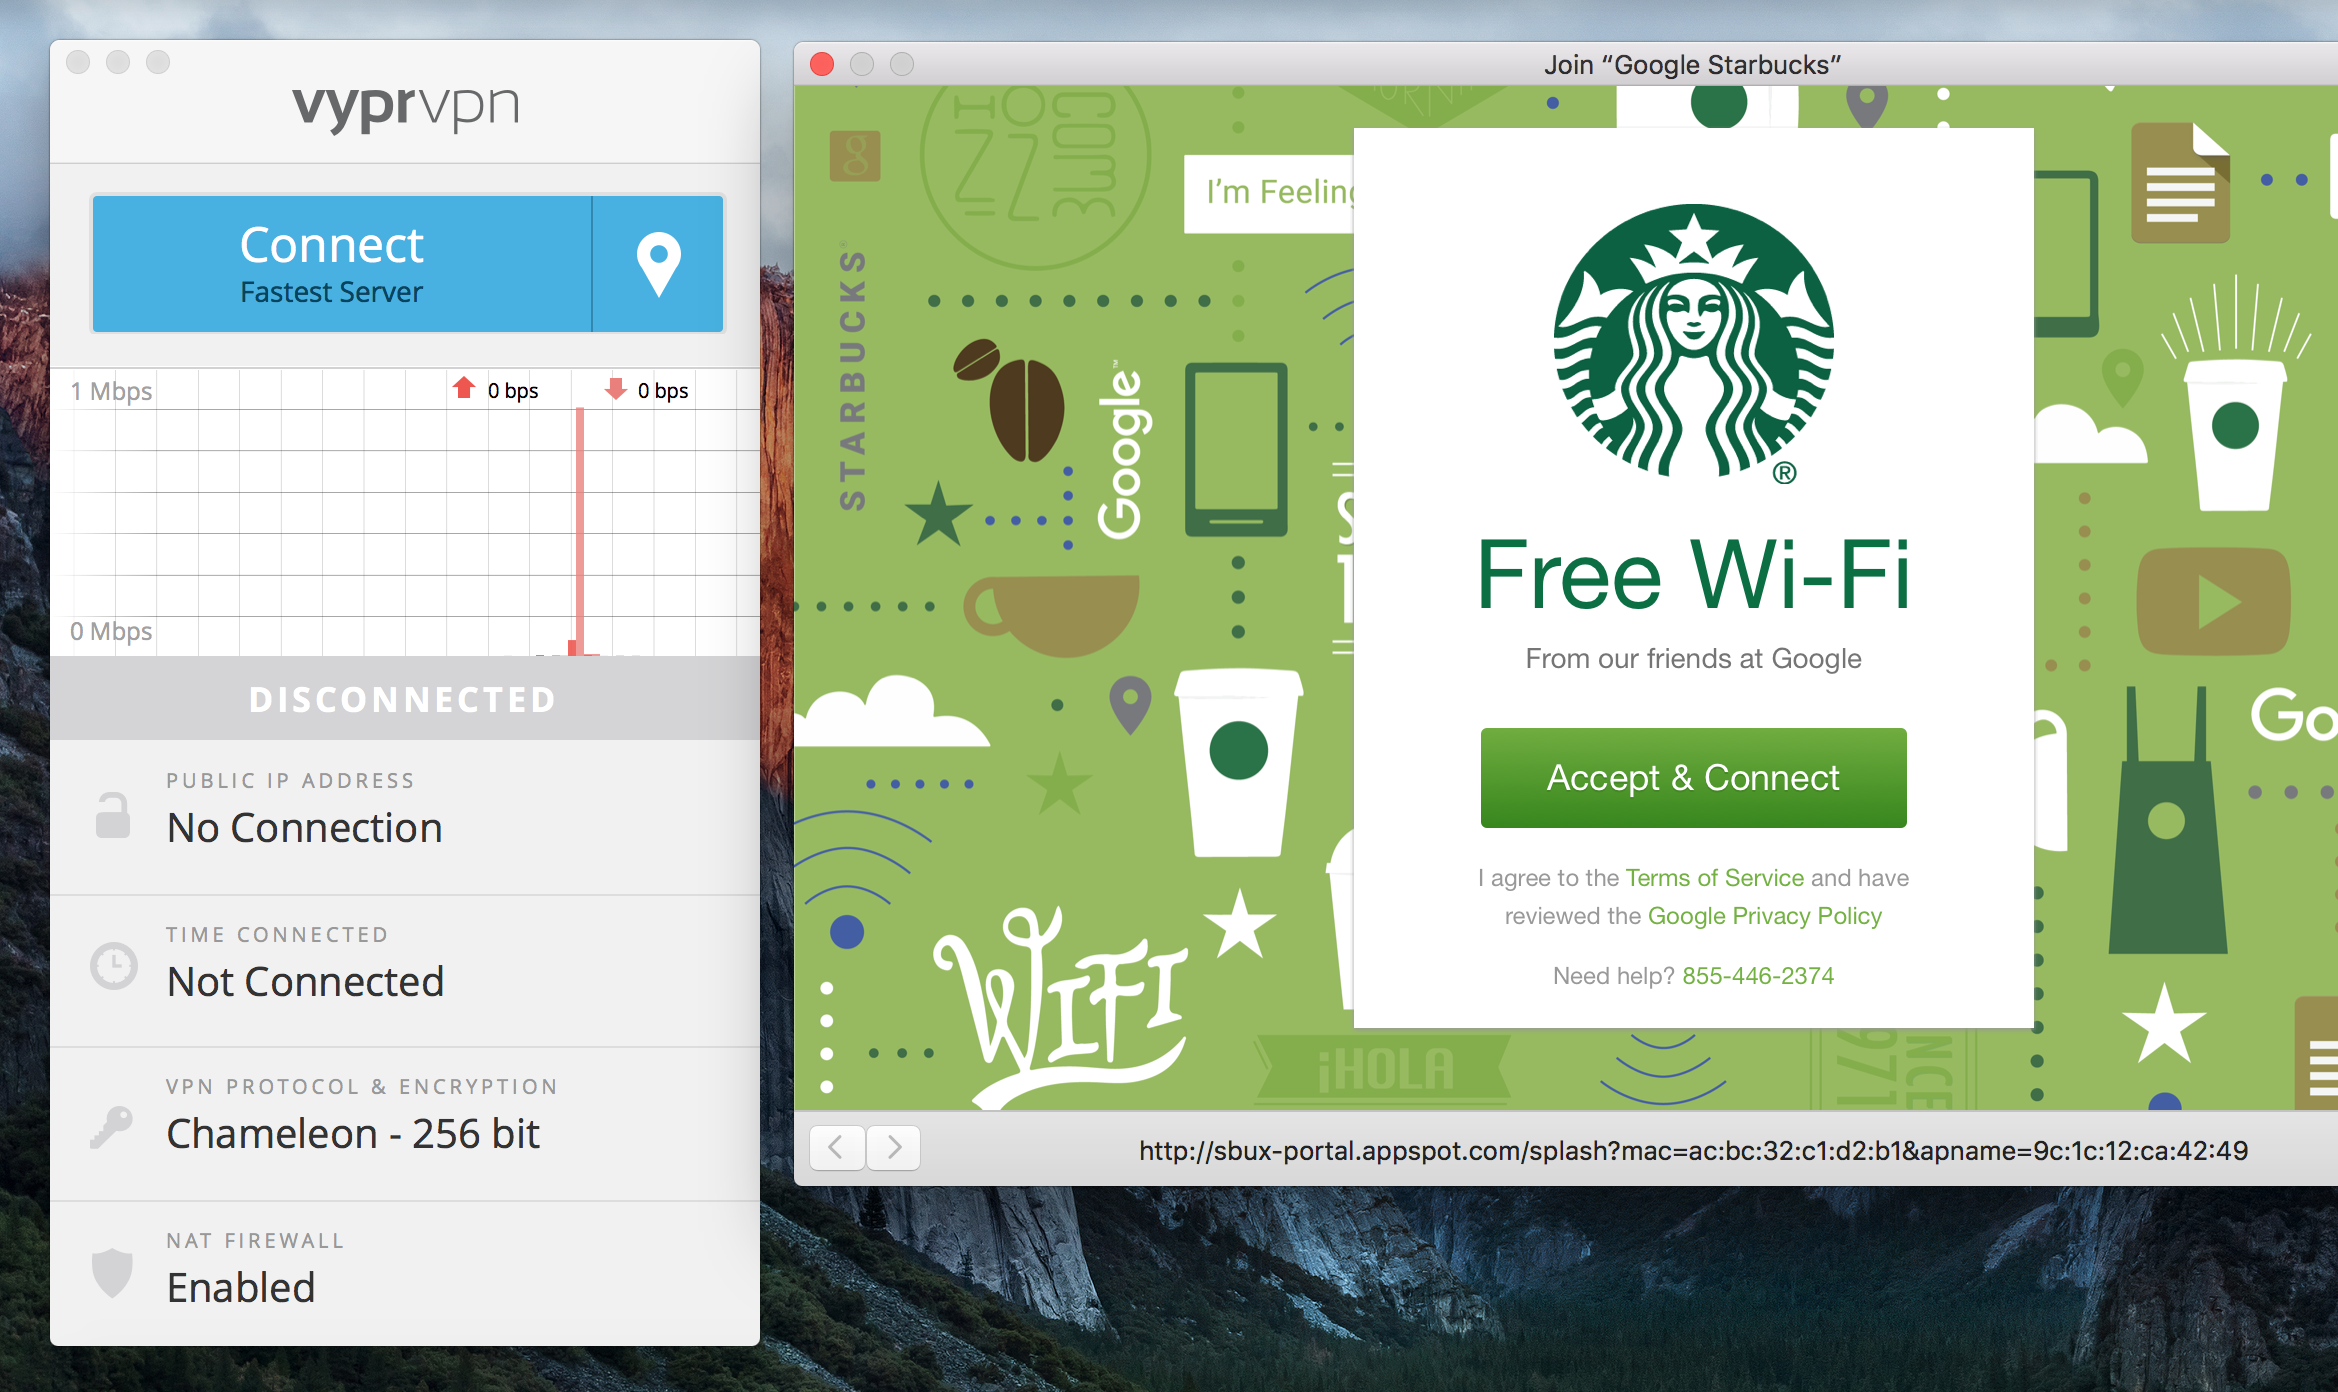 Connecting to the WiFi in Starbucks, NYC